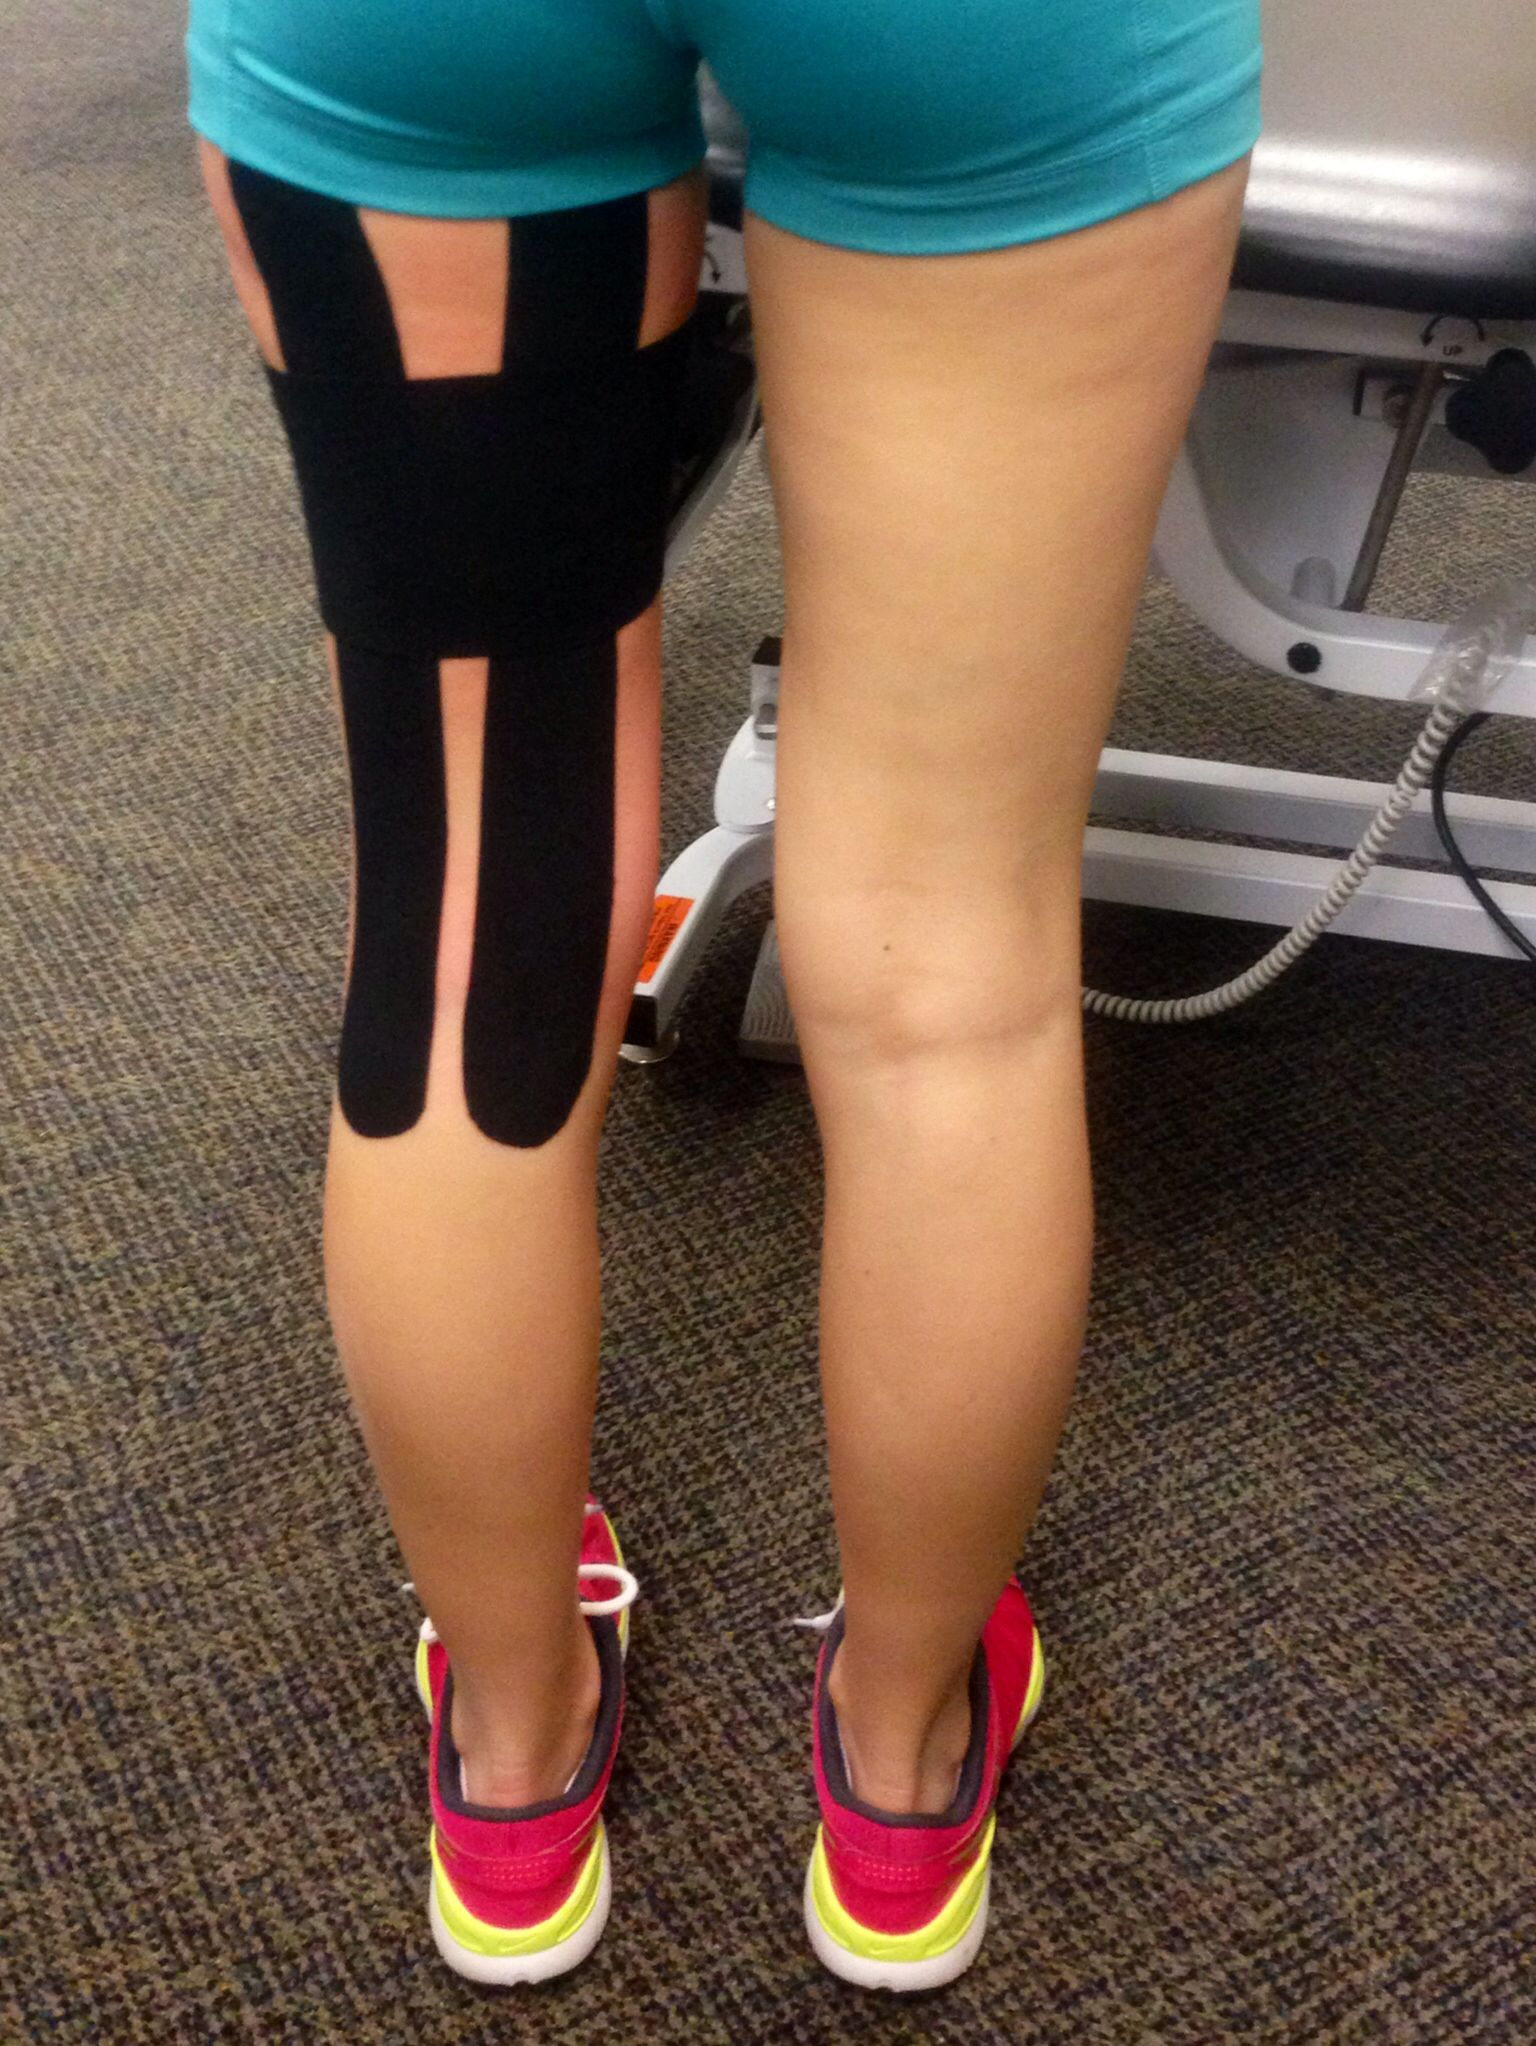 Taping can be effective but a brace provides more compression and is easier to use